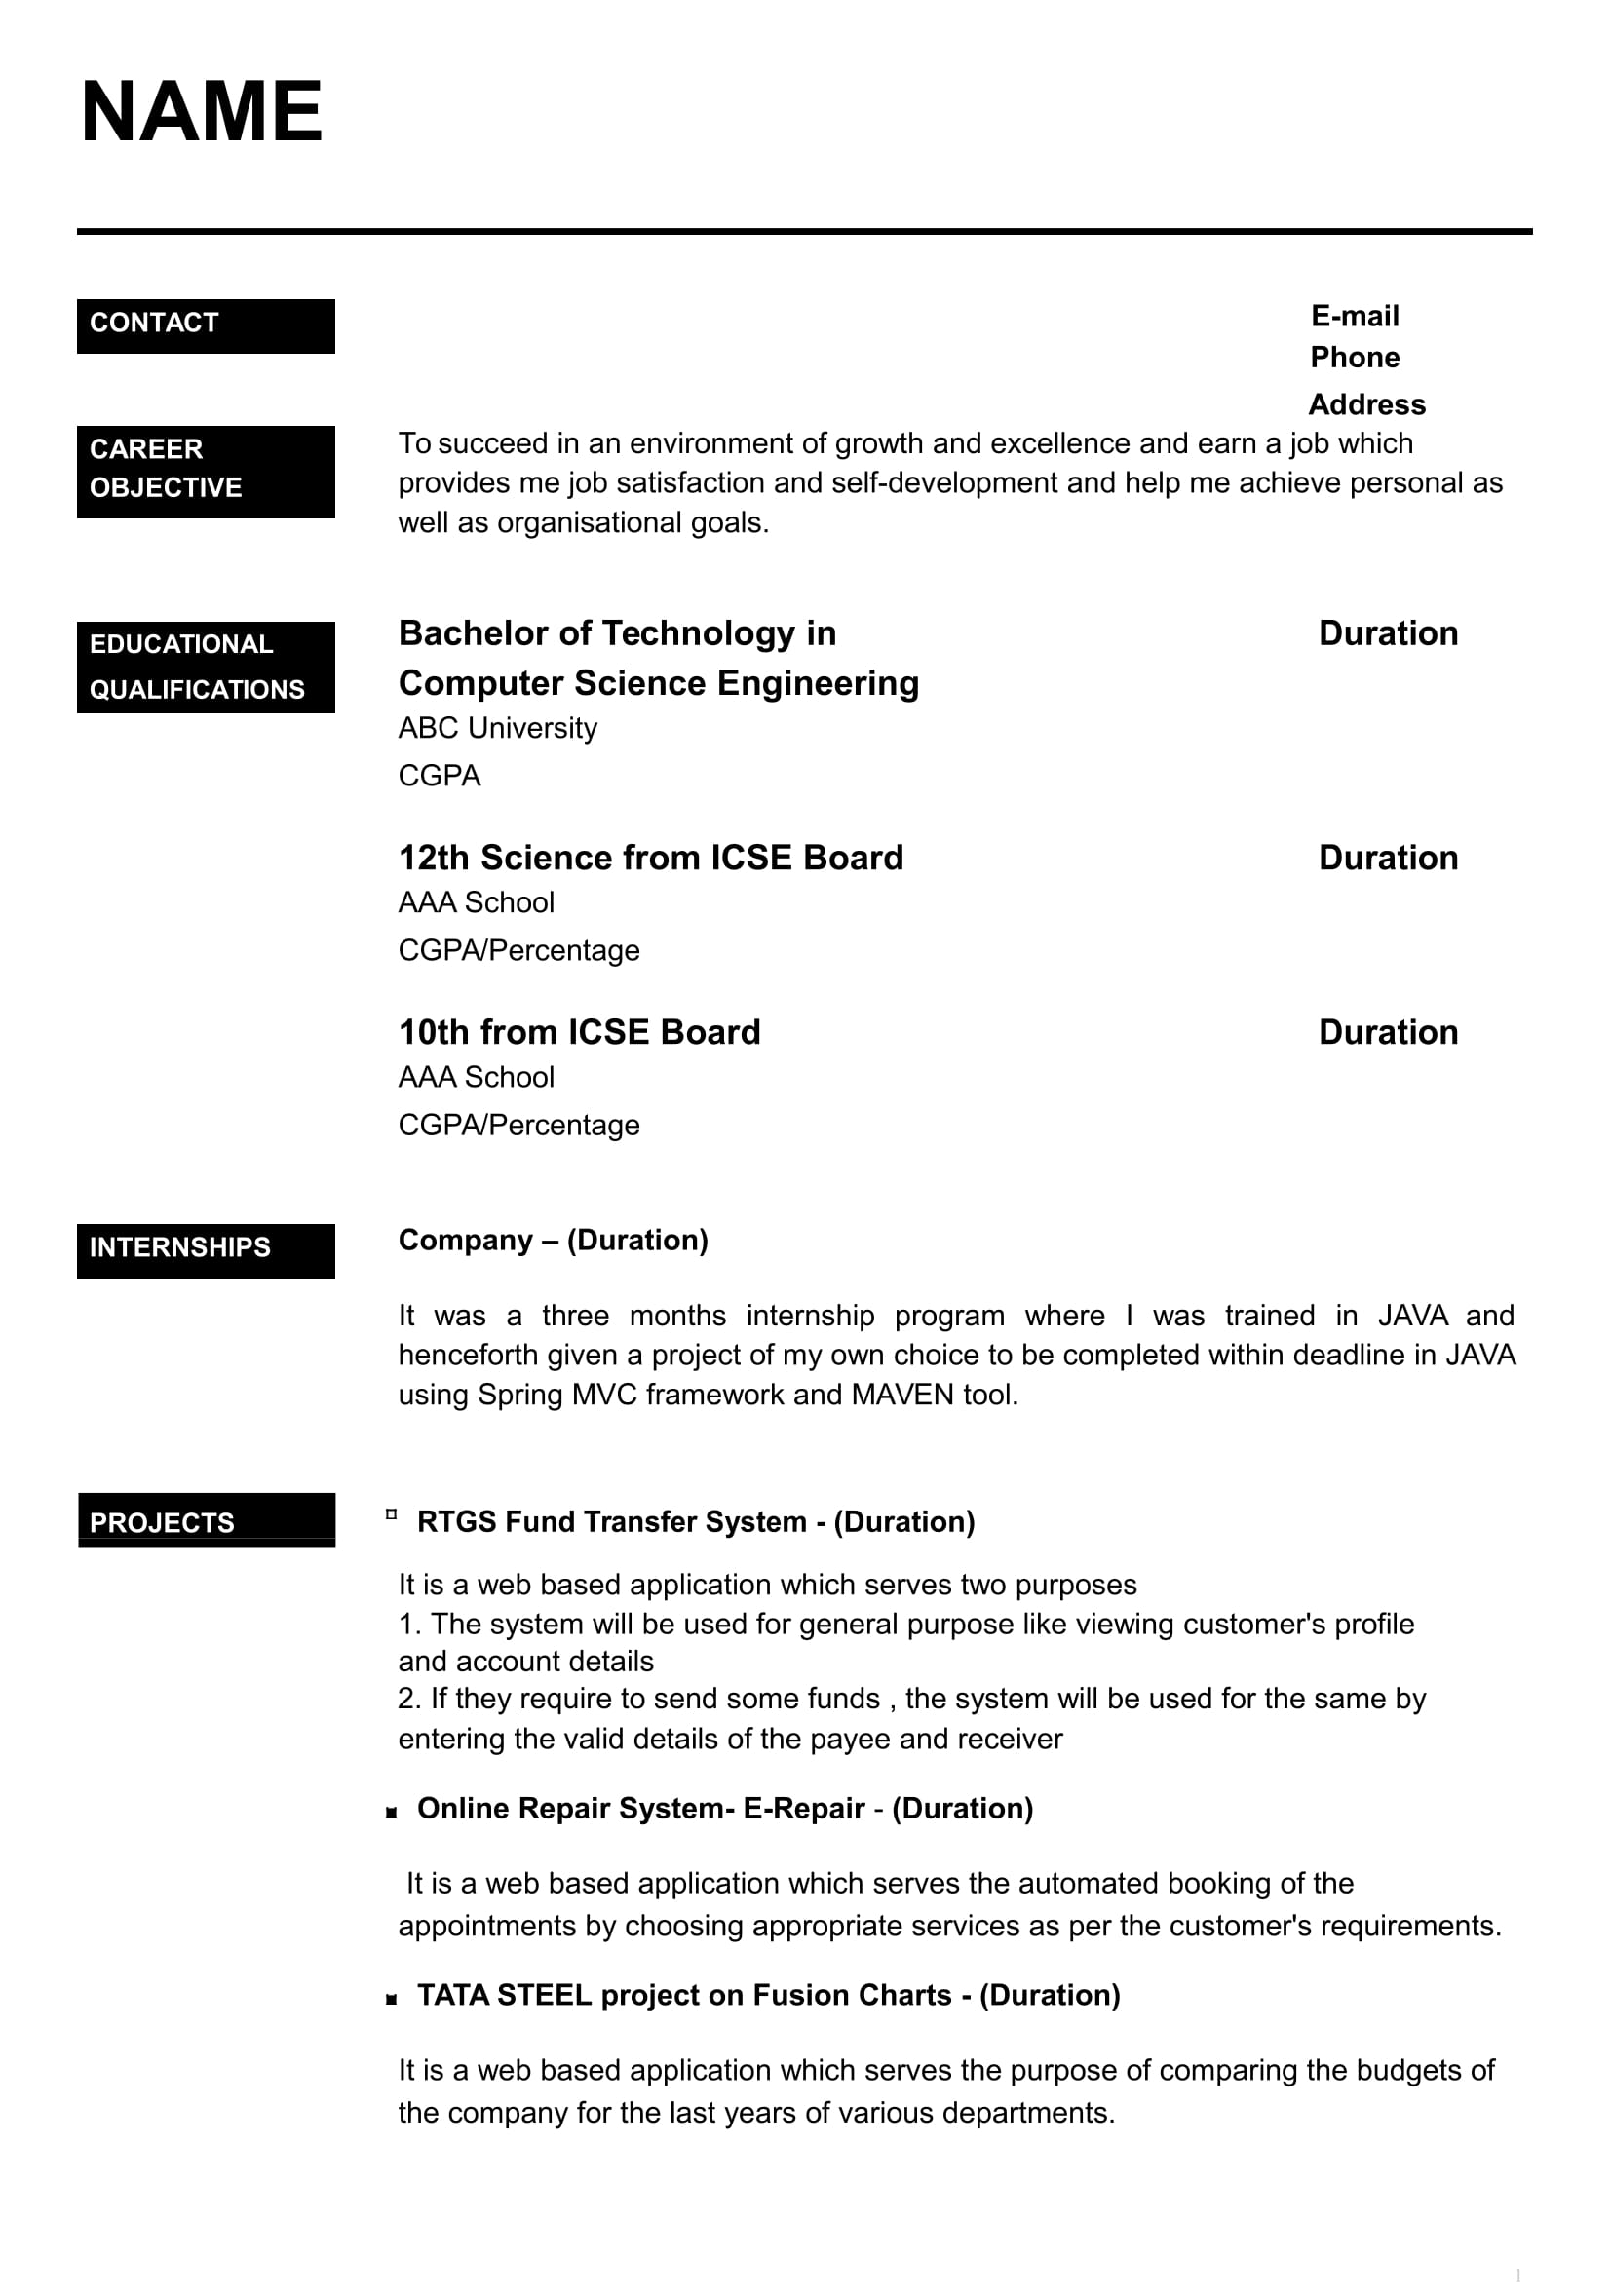 resume for internship for cse